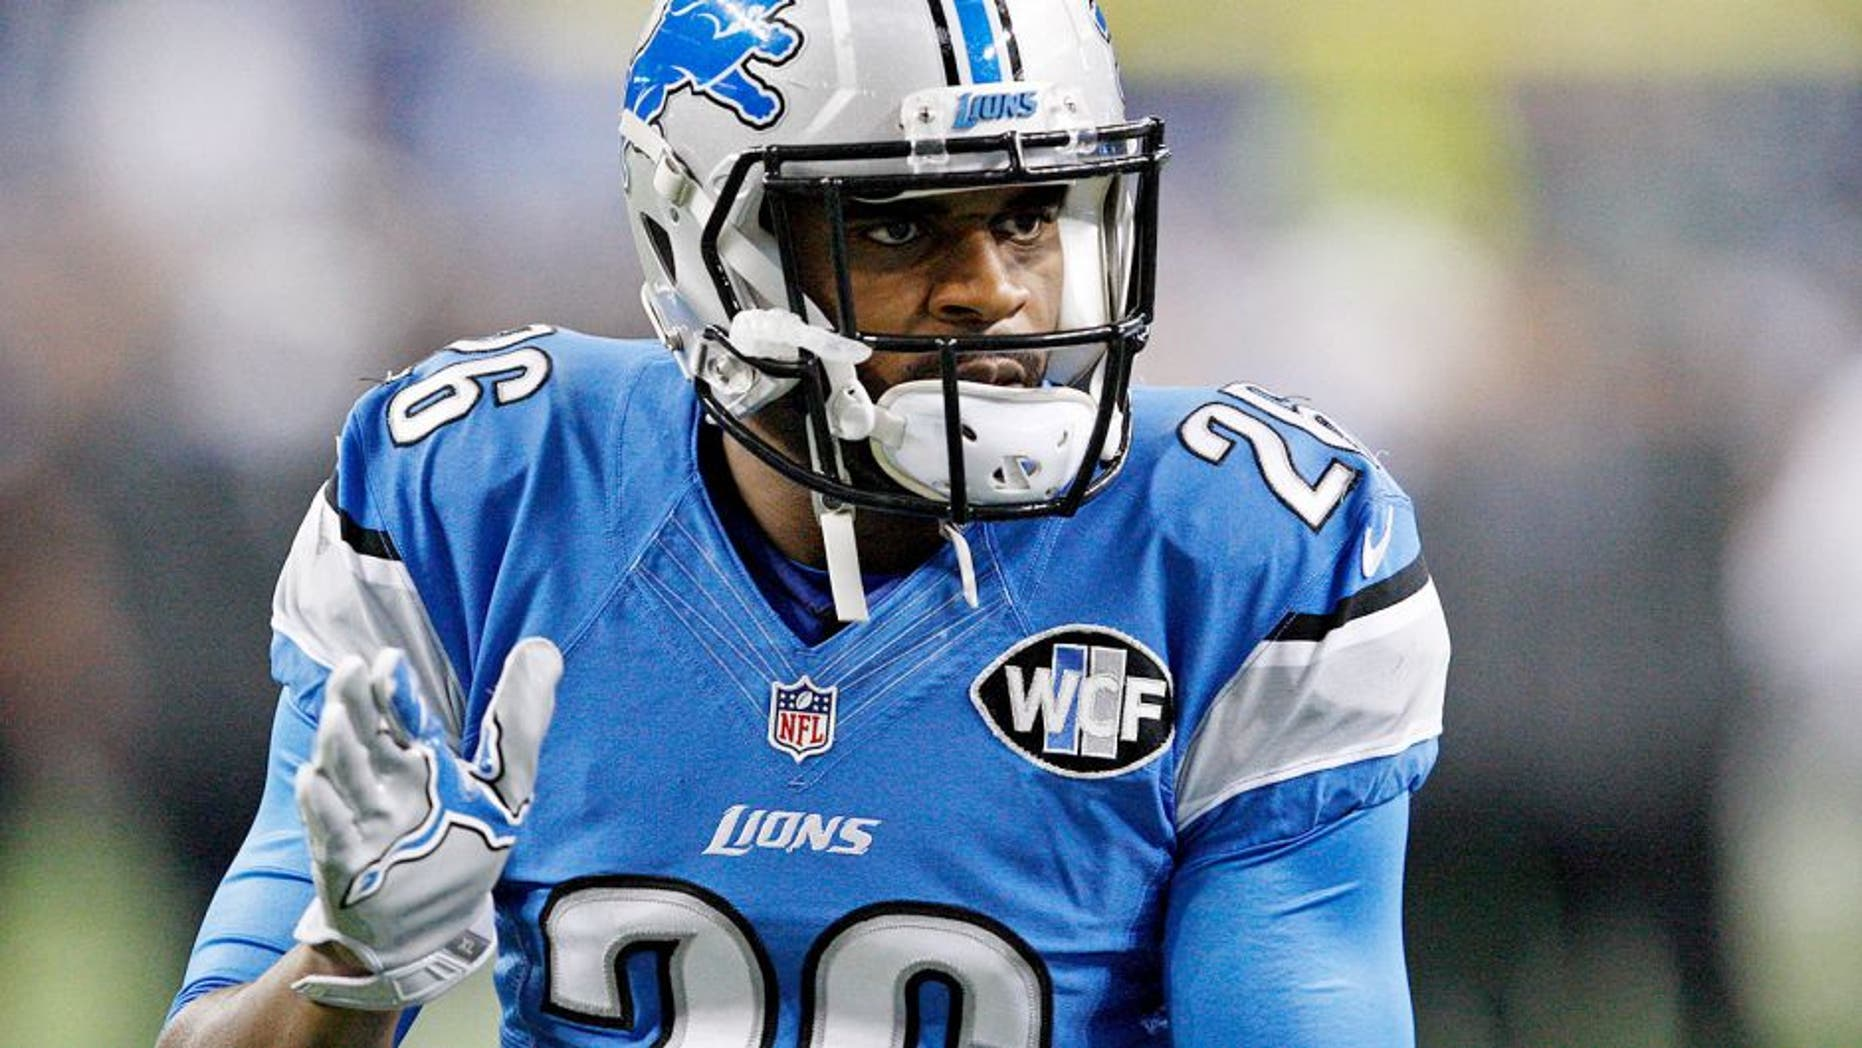 Nov 26, 2015; Detroit, MI, USA; Detroit Lions strong safety Don Carey (26) claps his hands before the NFL game against the Philadelphia Eagles on Thanksgiving at Ford Field. Mandatory Credit: Raj Mehta-USA TODAY Sports